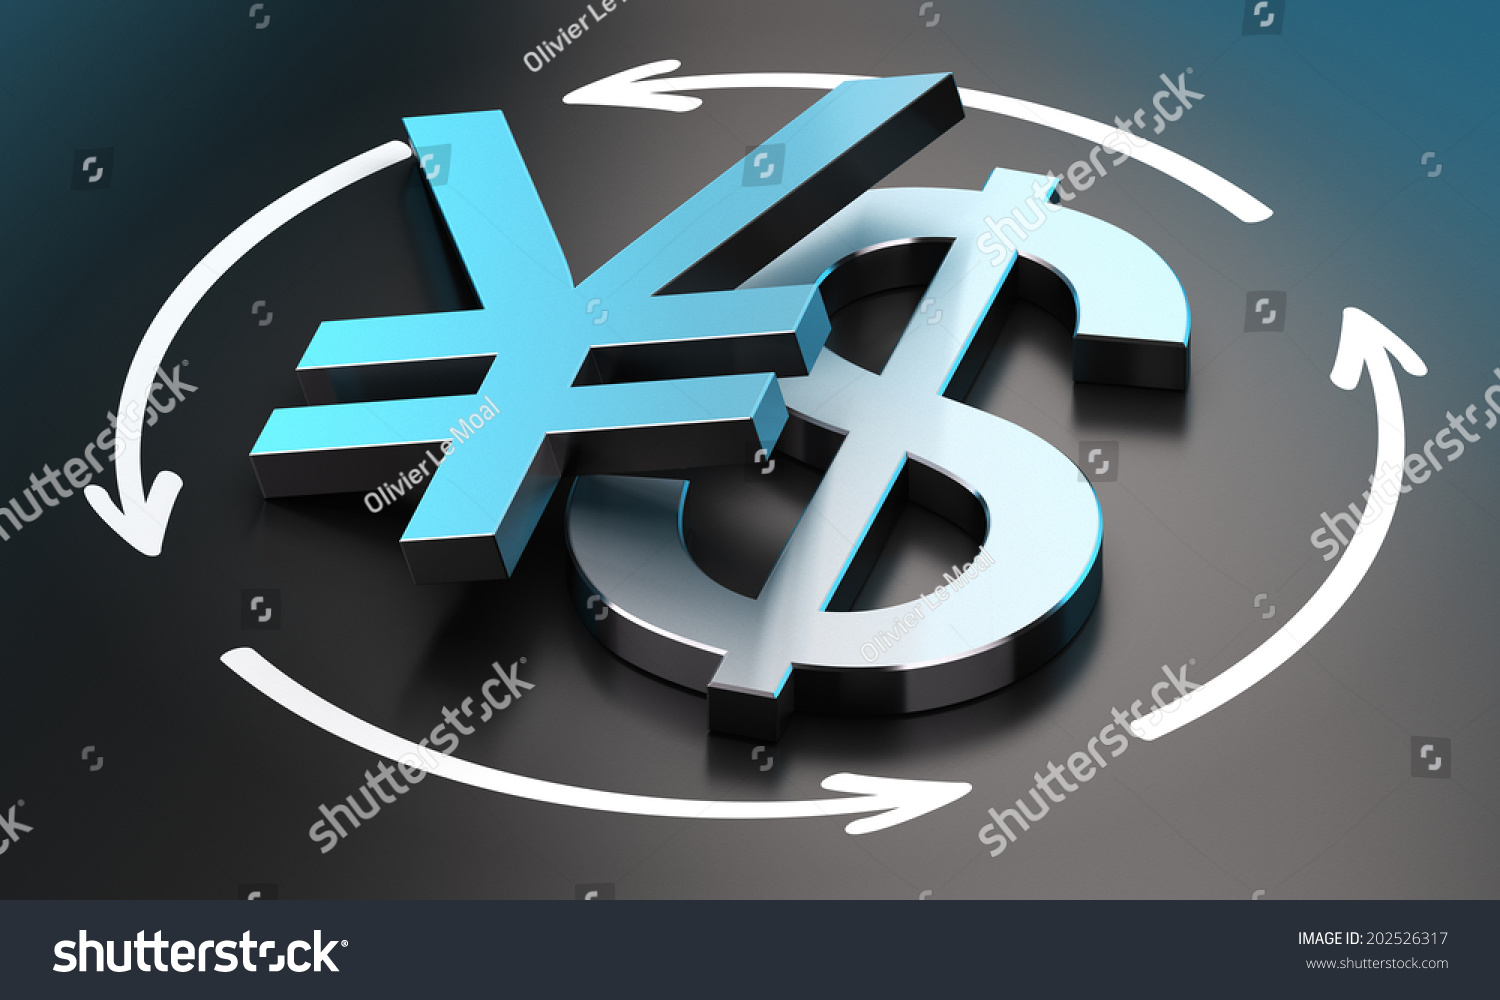 Us Dollar Japanese Yen Symbols Over Stock Illustration 202526317